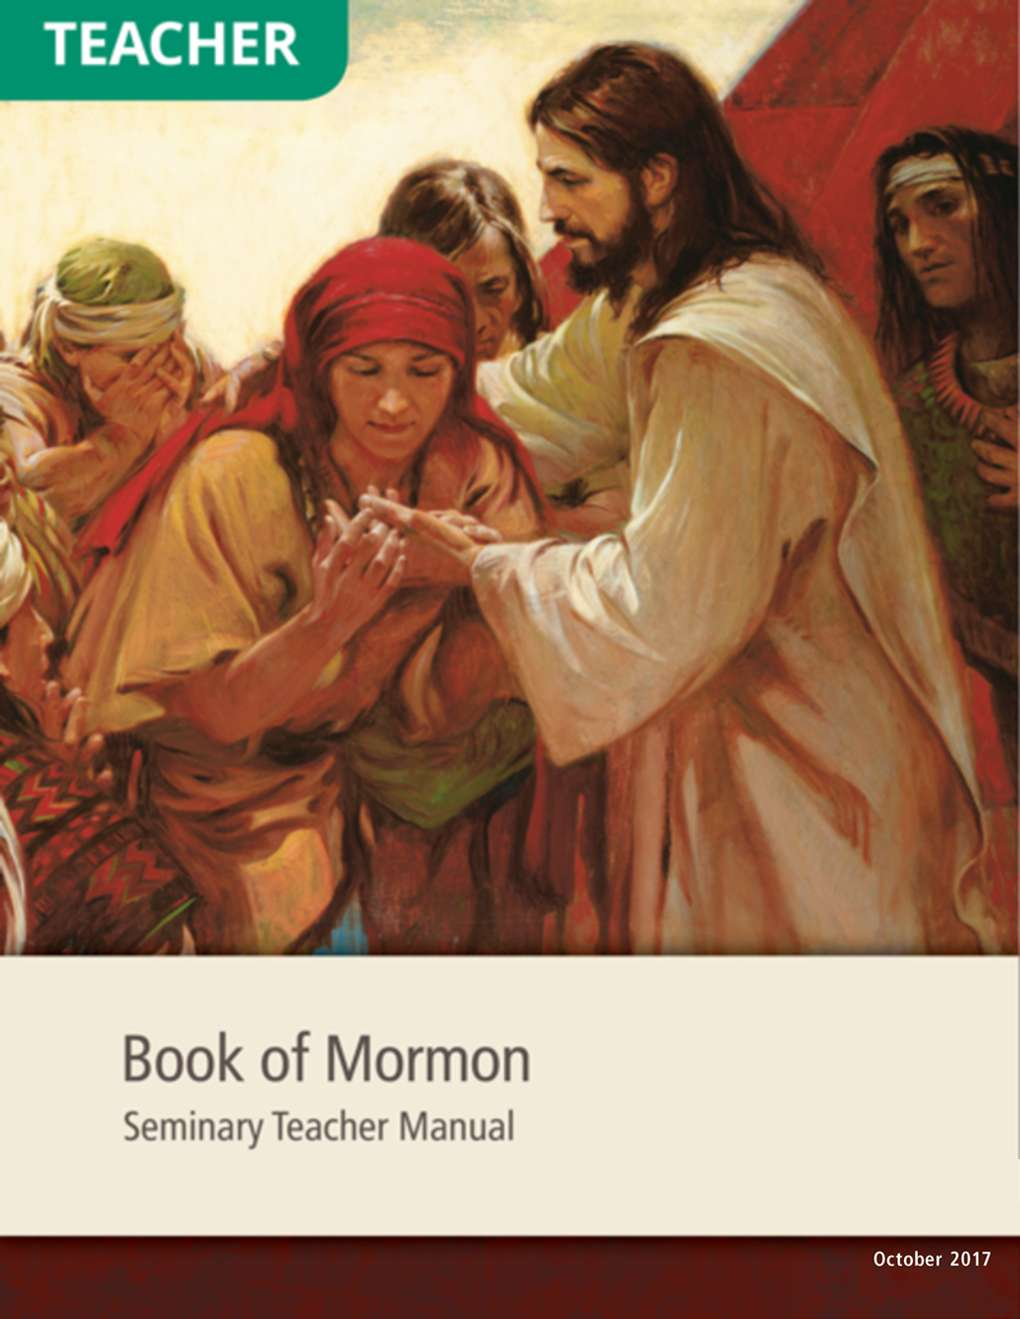 Book of Mormon Teacher Manual